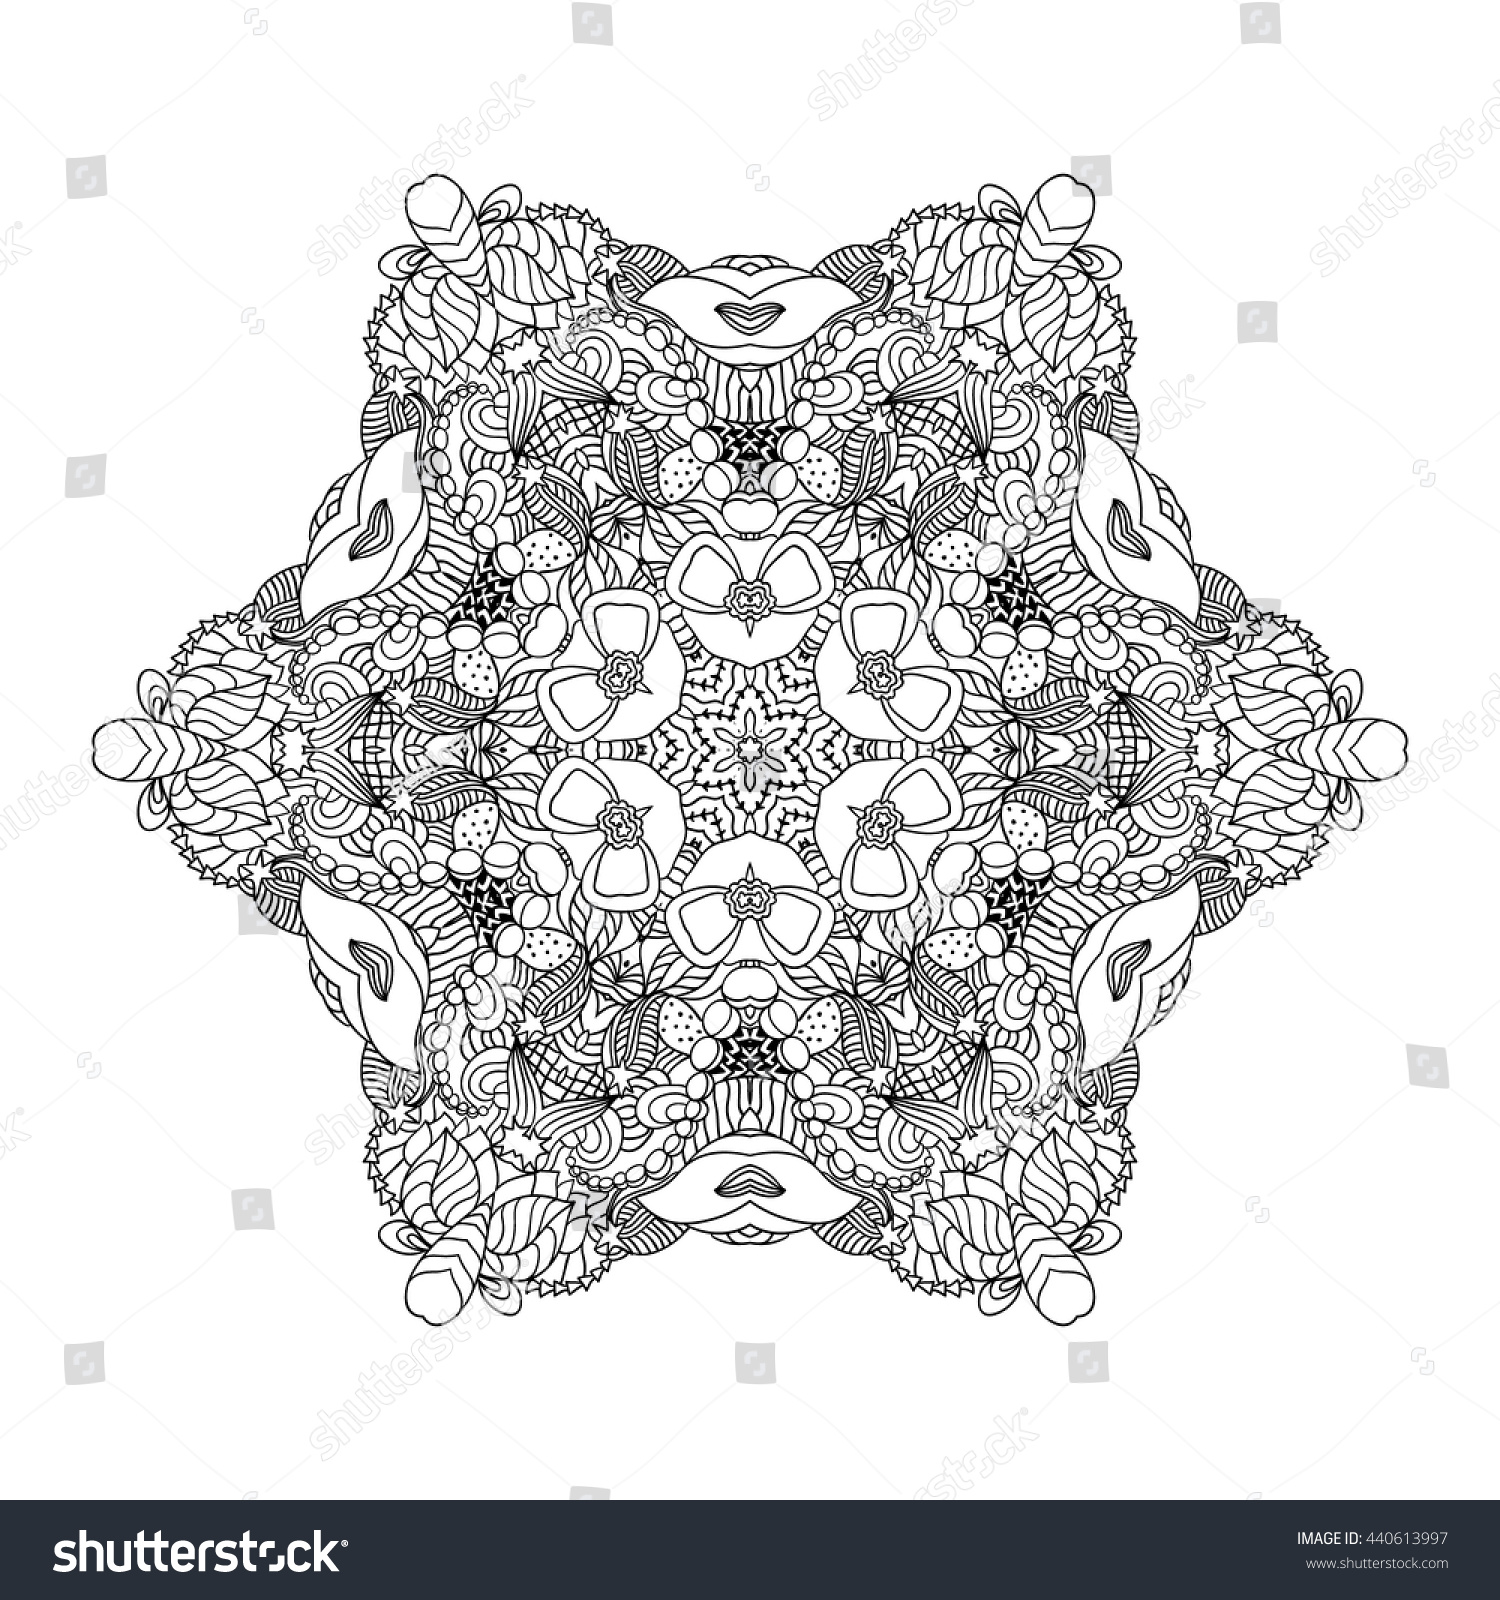 adult coloring page mandala vector for art coloring book zendoodle round zentangle - Line Art Coloring Pages